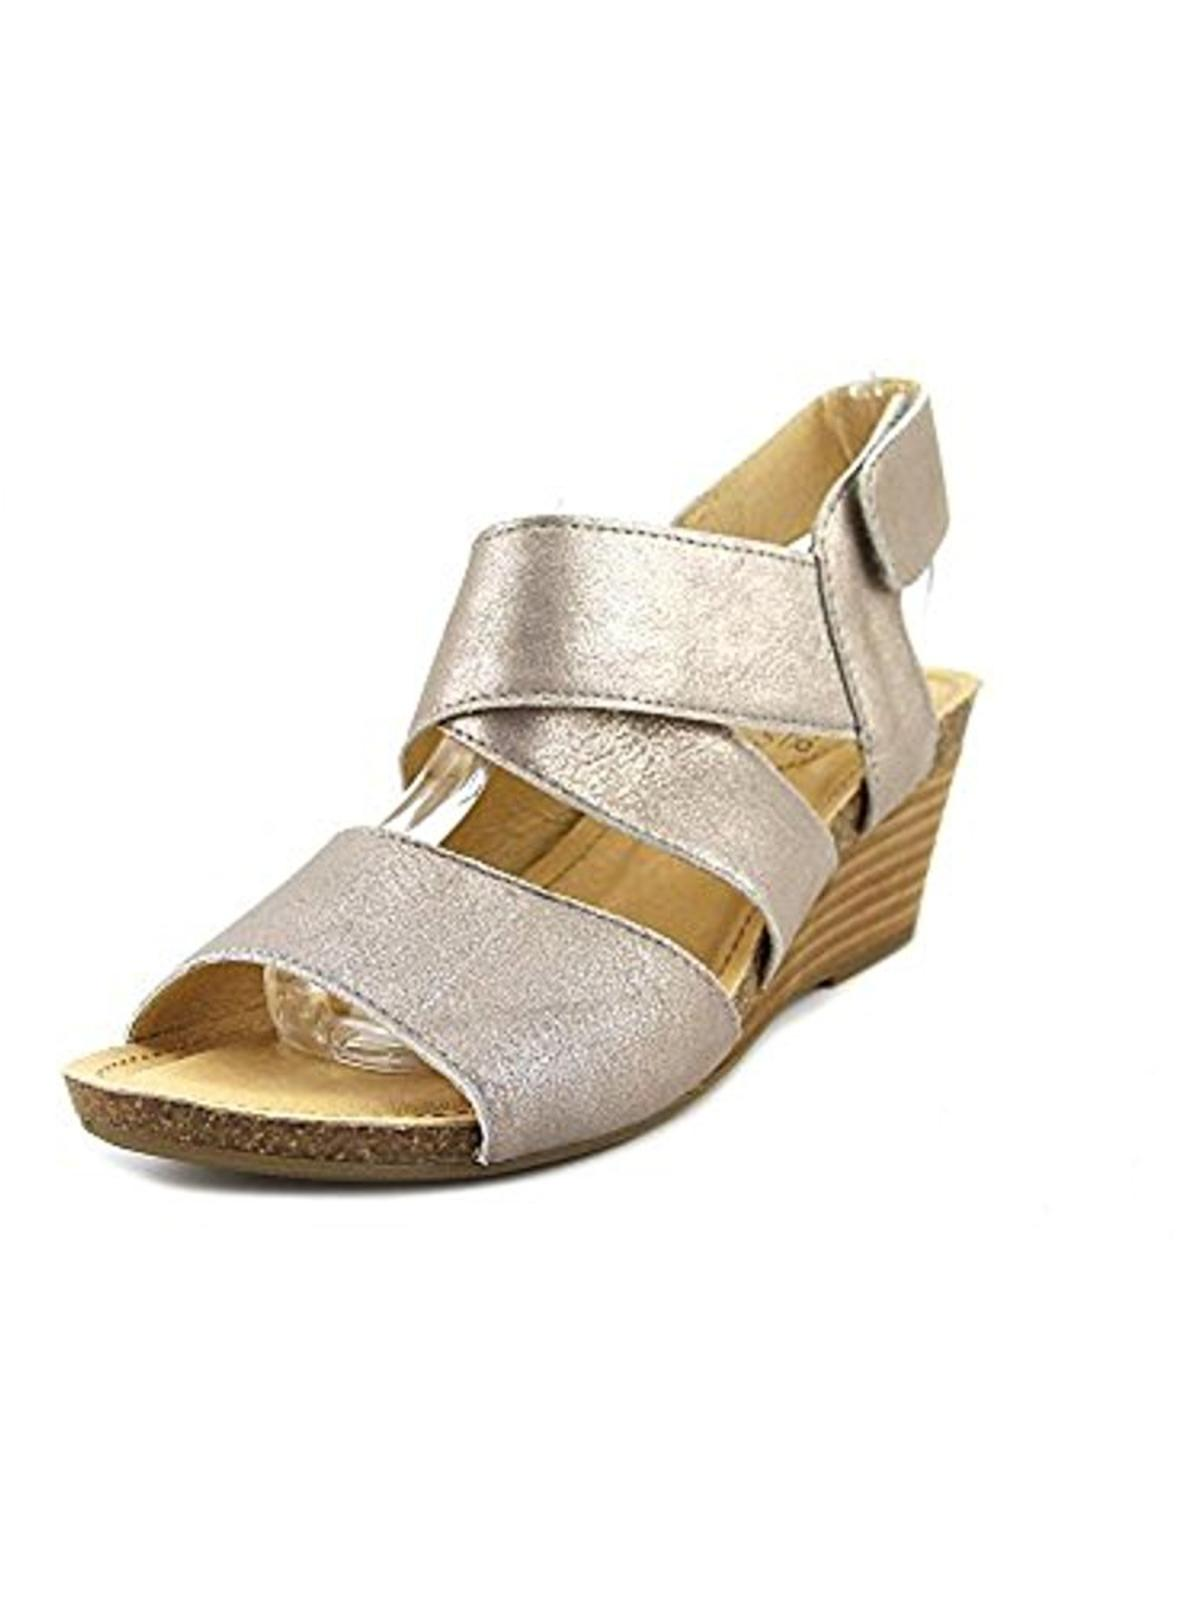 Adam Tucker Me Too Womens Toree 16 Shimmer Leather Wedge Sandals by Adam Tucker Me Too